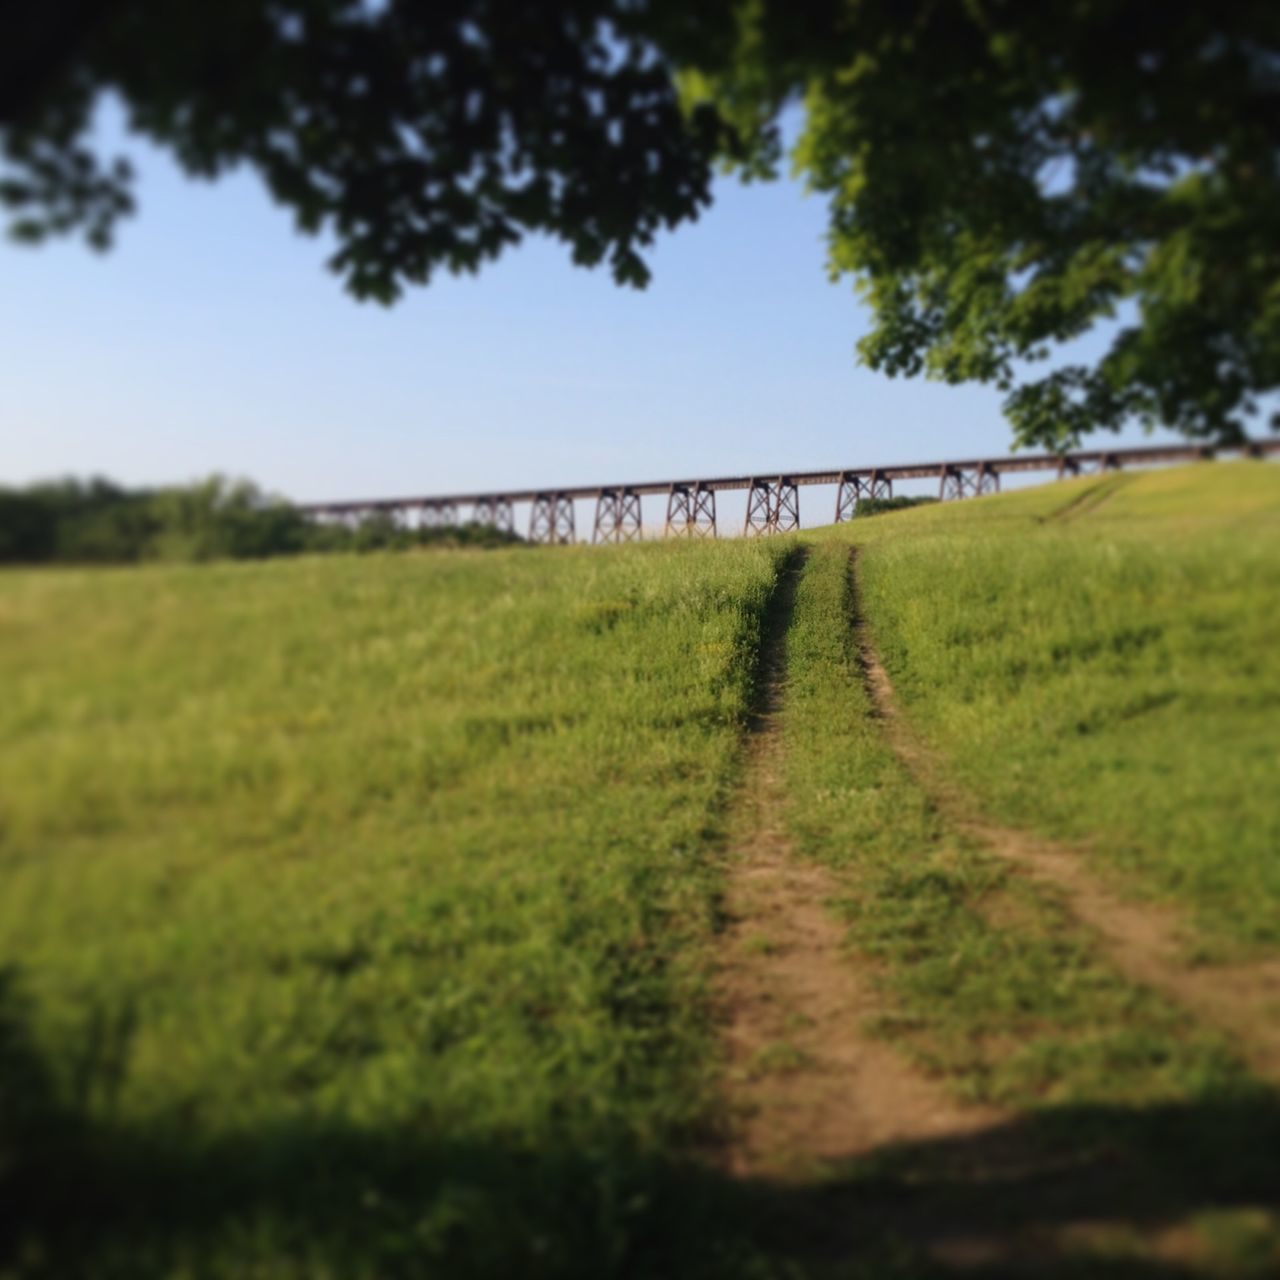 bridge - man made structure, connection, field, transportation, day, green color, tree, nature, outdoors, grass, growth, the way forward, no people, landscape, road, sky, clear sky, architecture